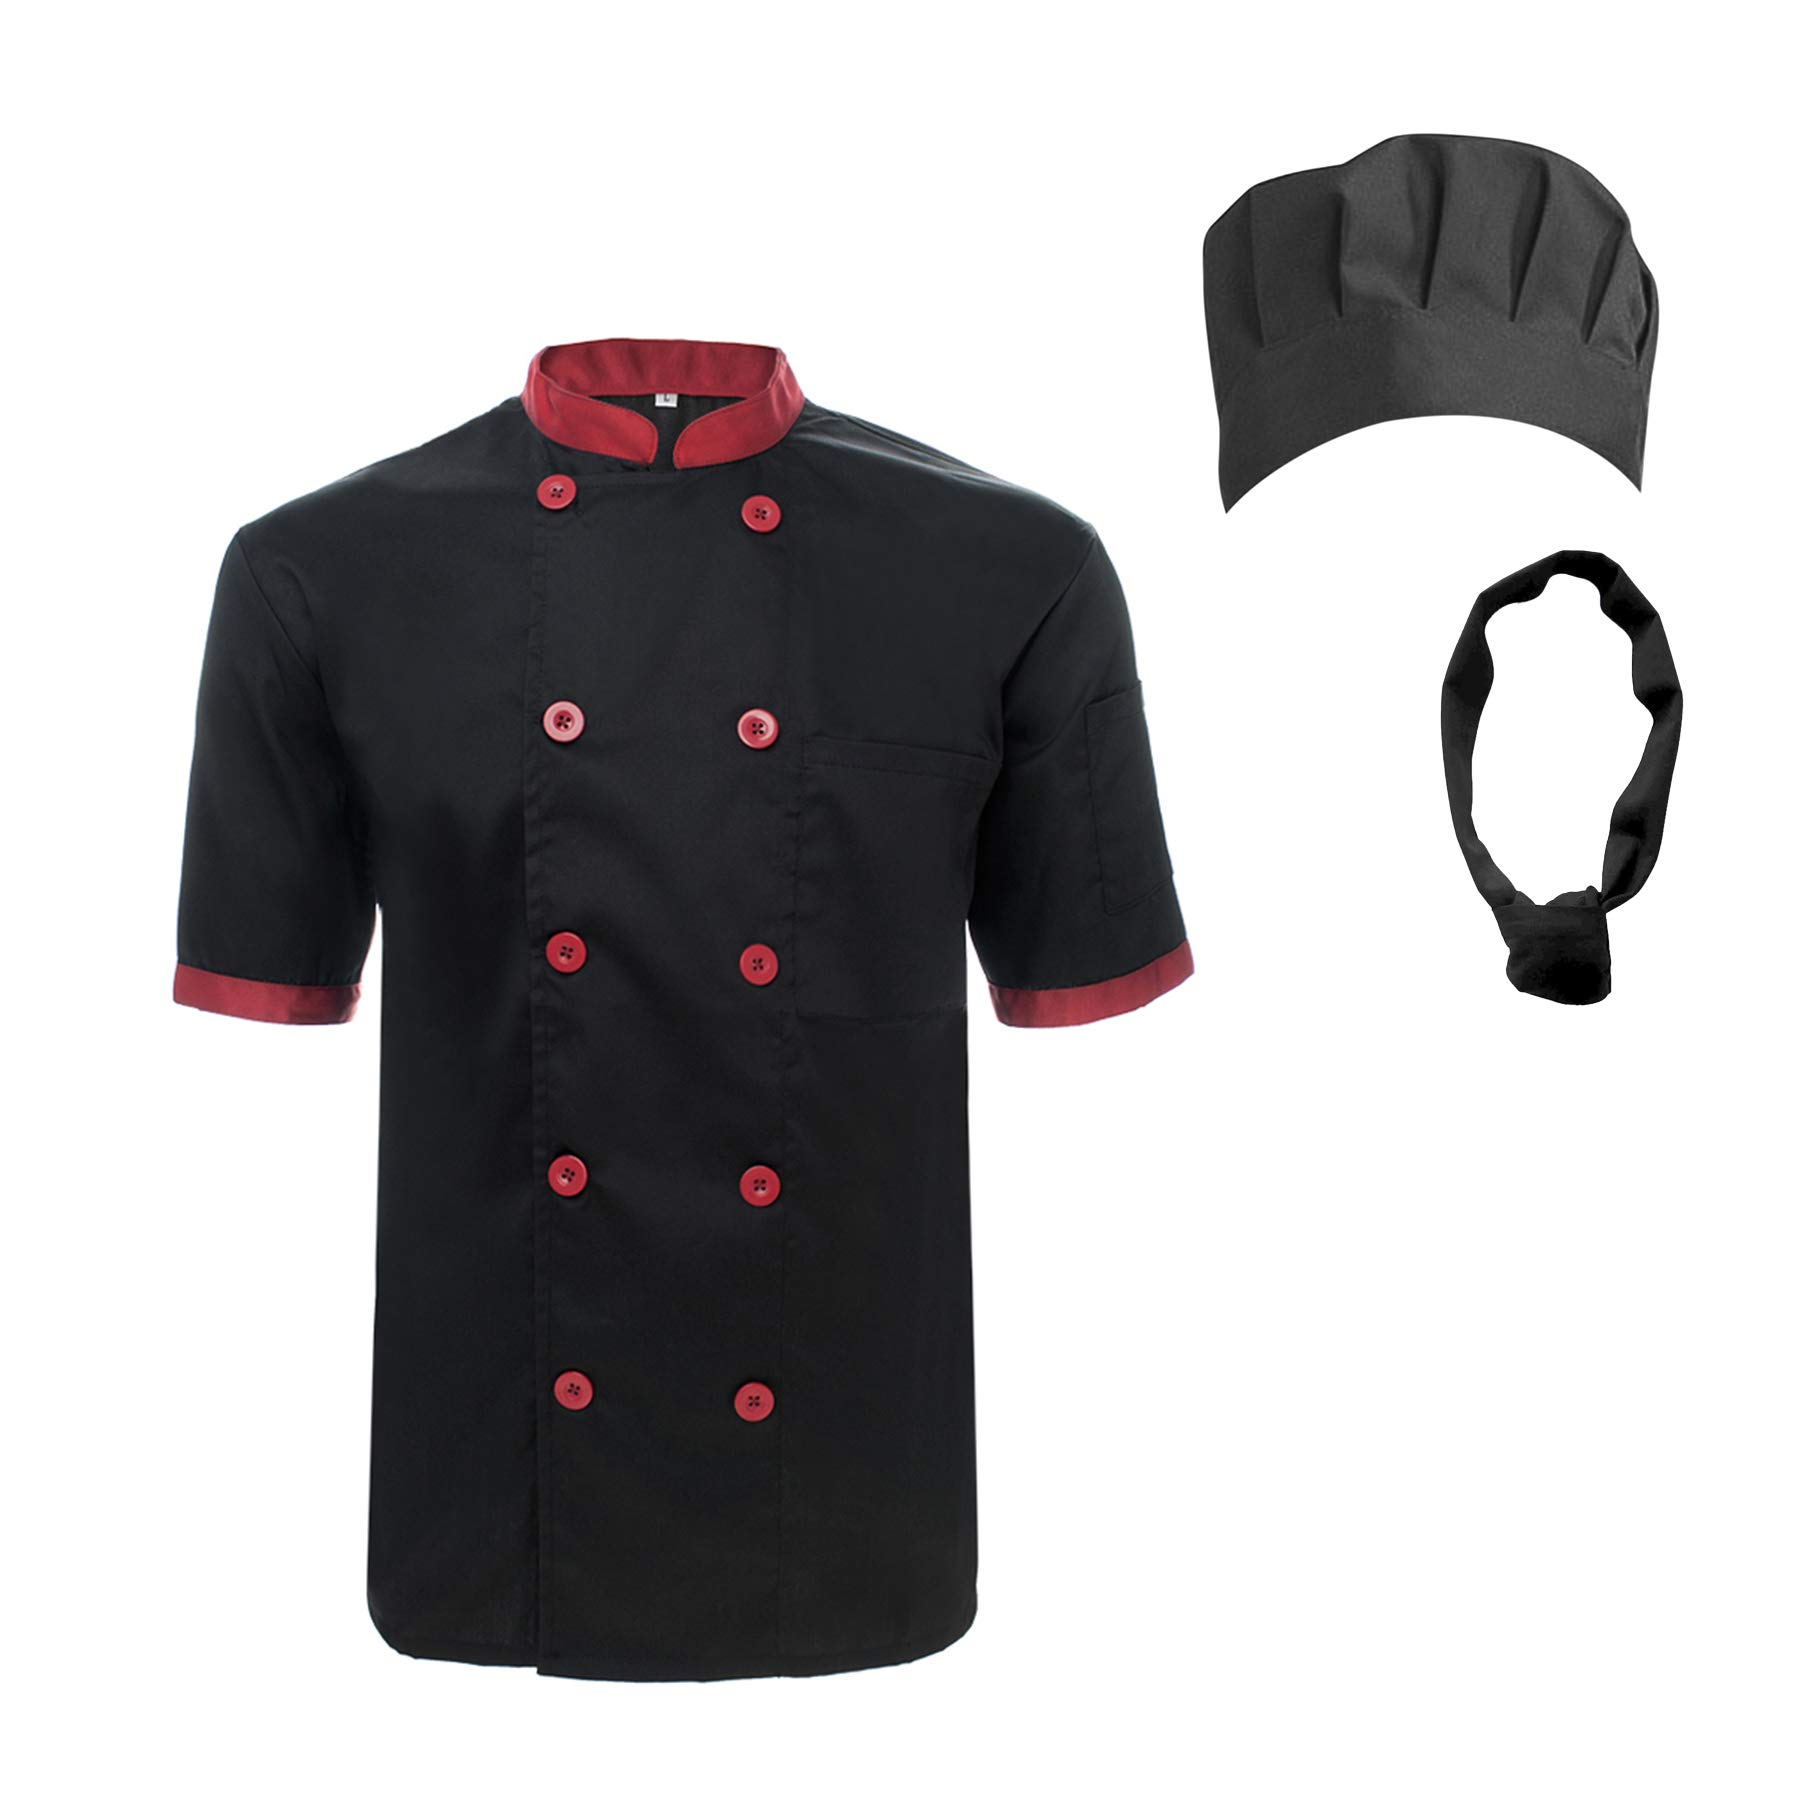 TOPTIE Unisex Short Sleeve Cooking Chef Coat Jacket & Hat & Bandana Set